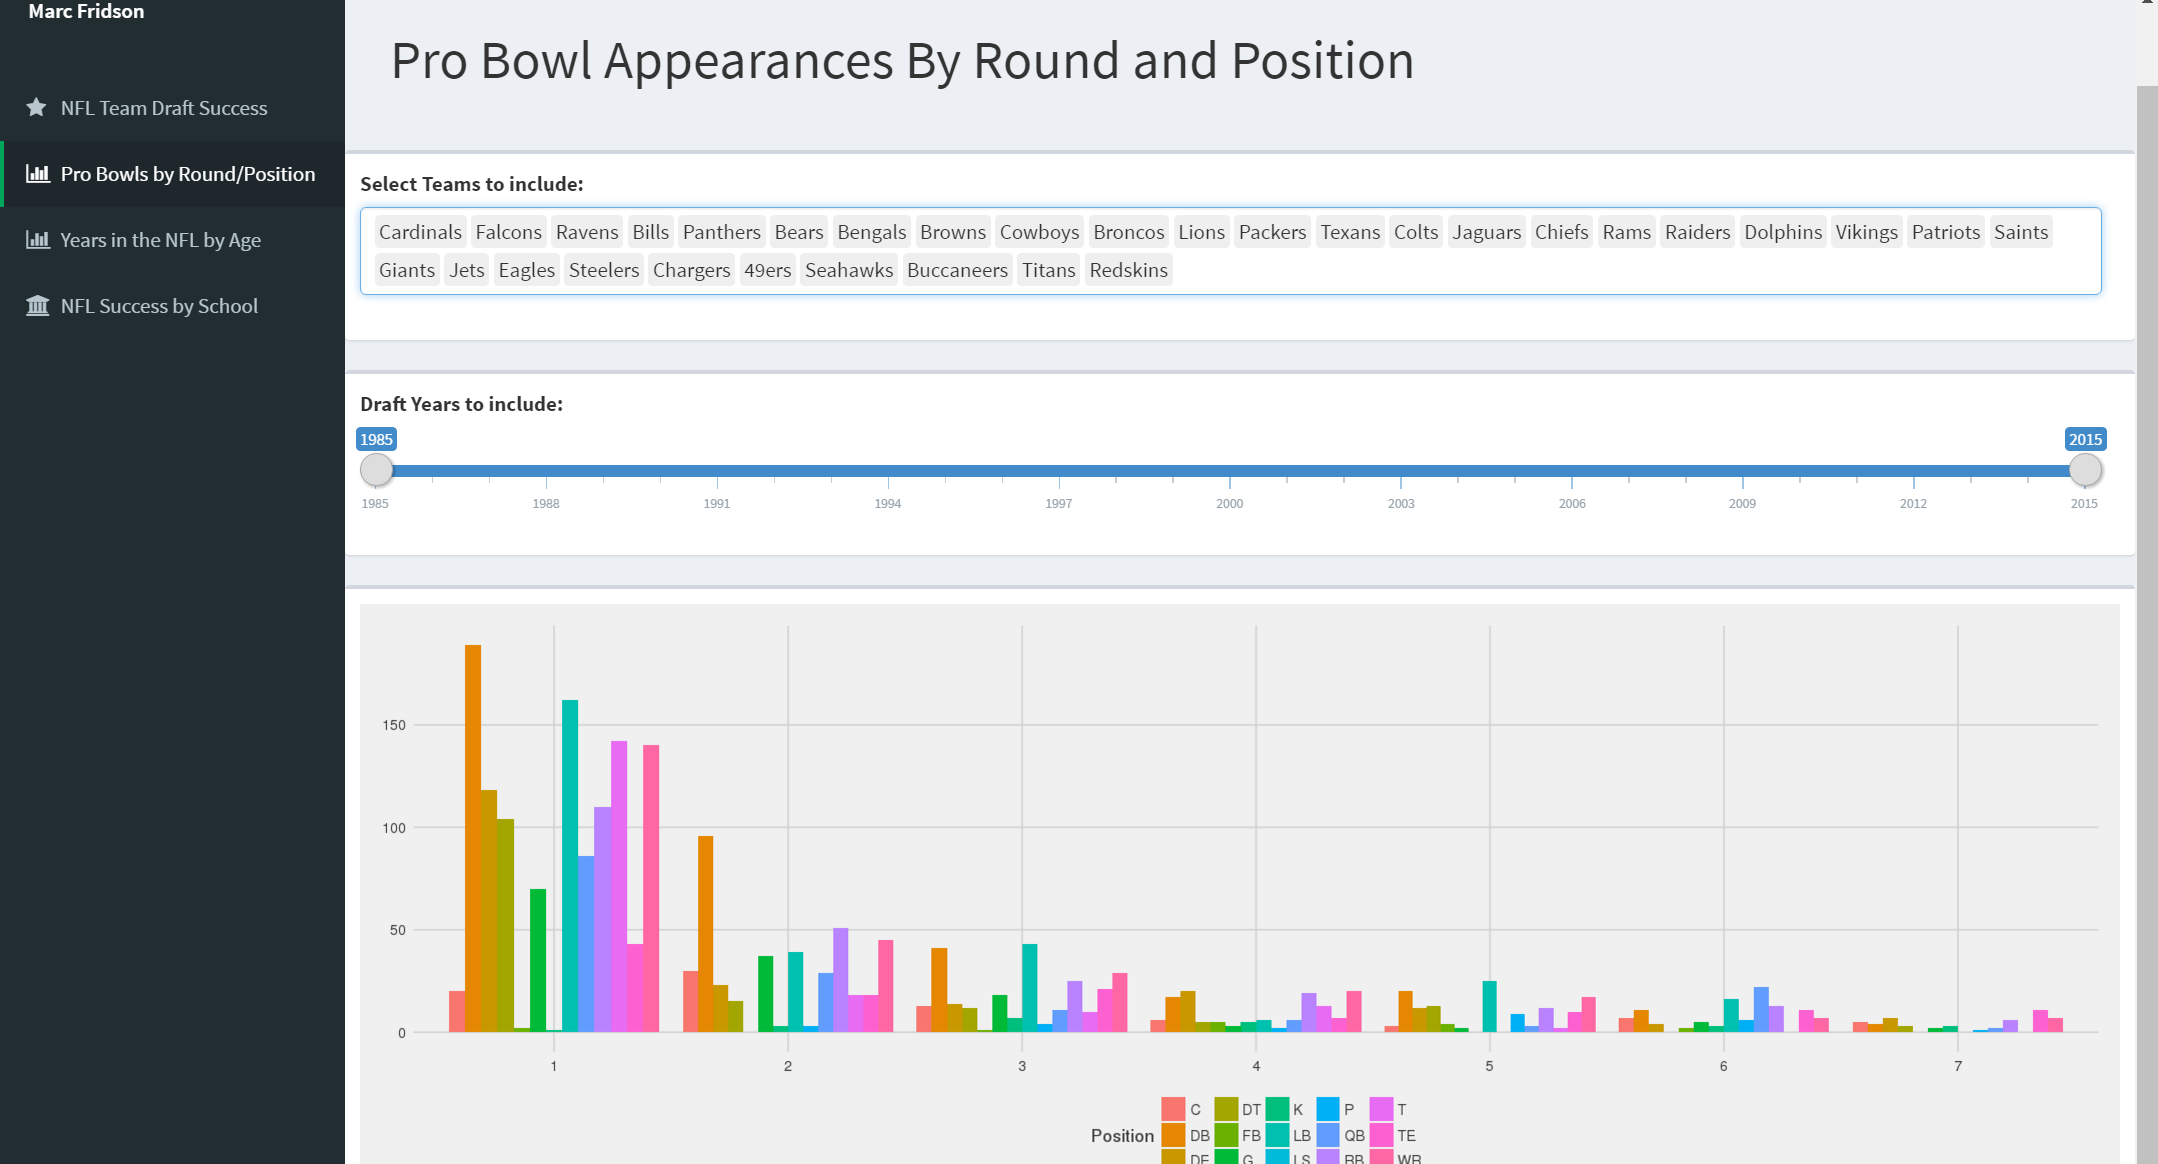 Pro Bowls by Round